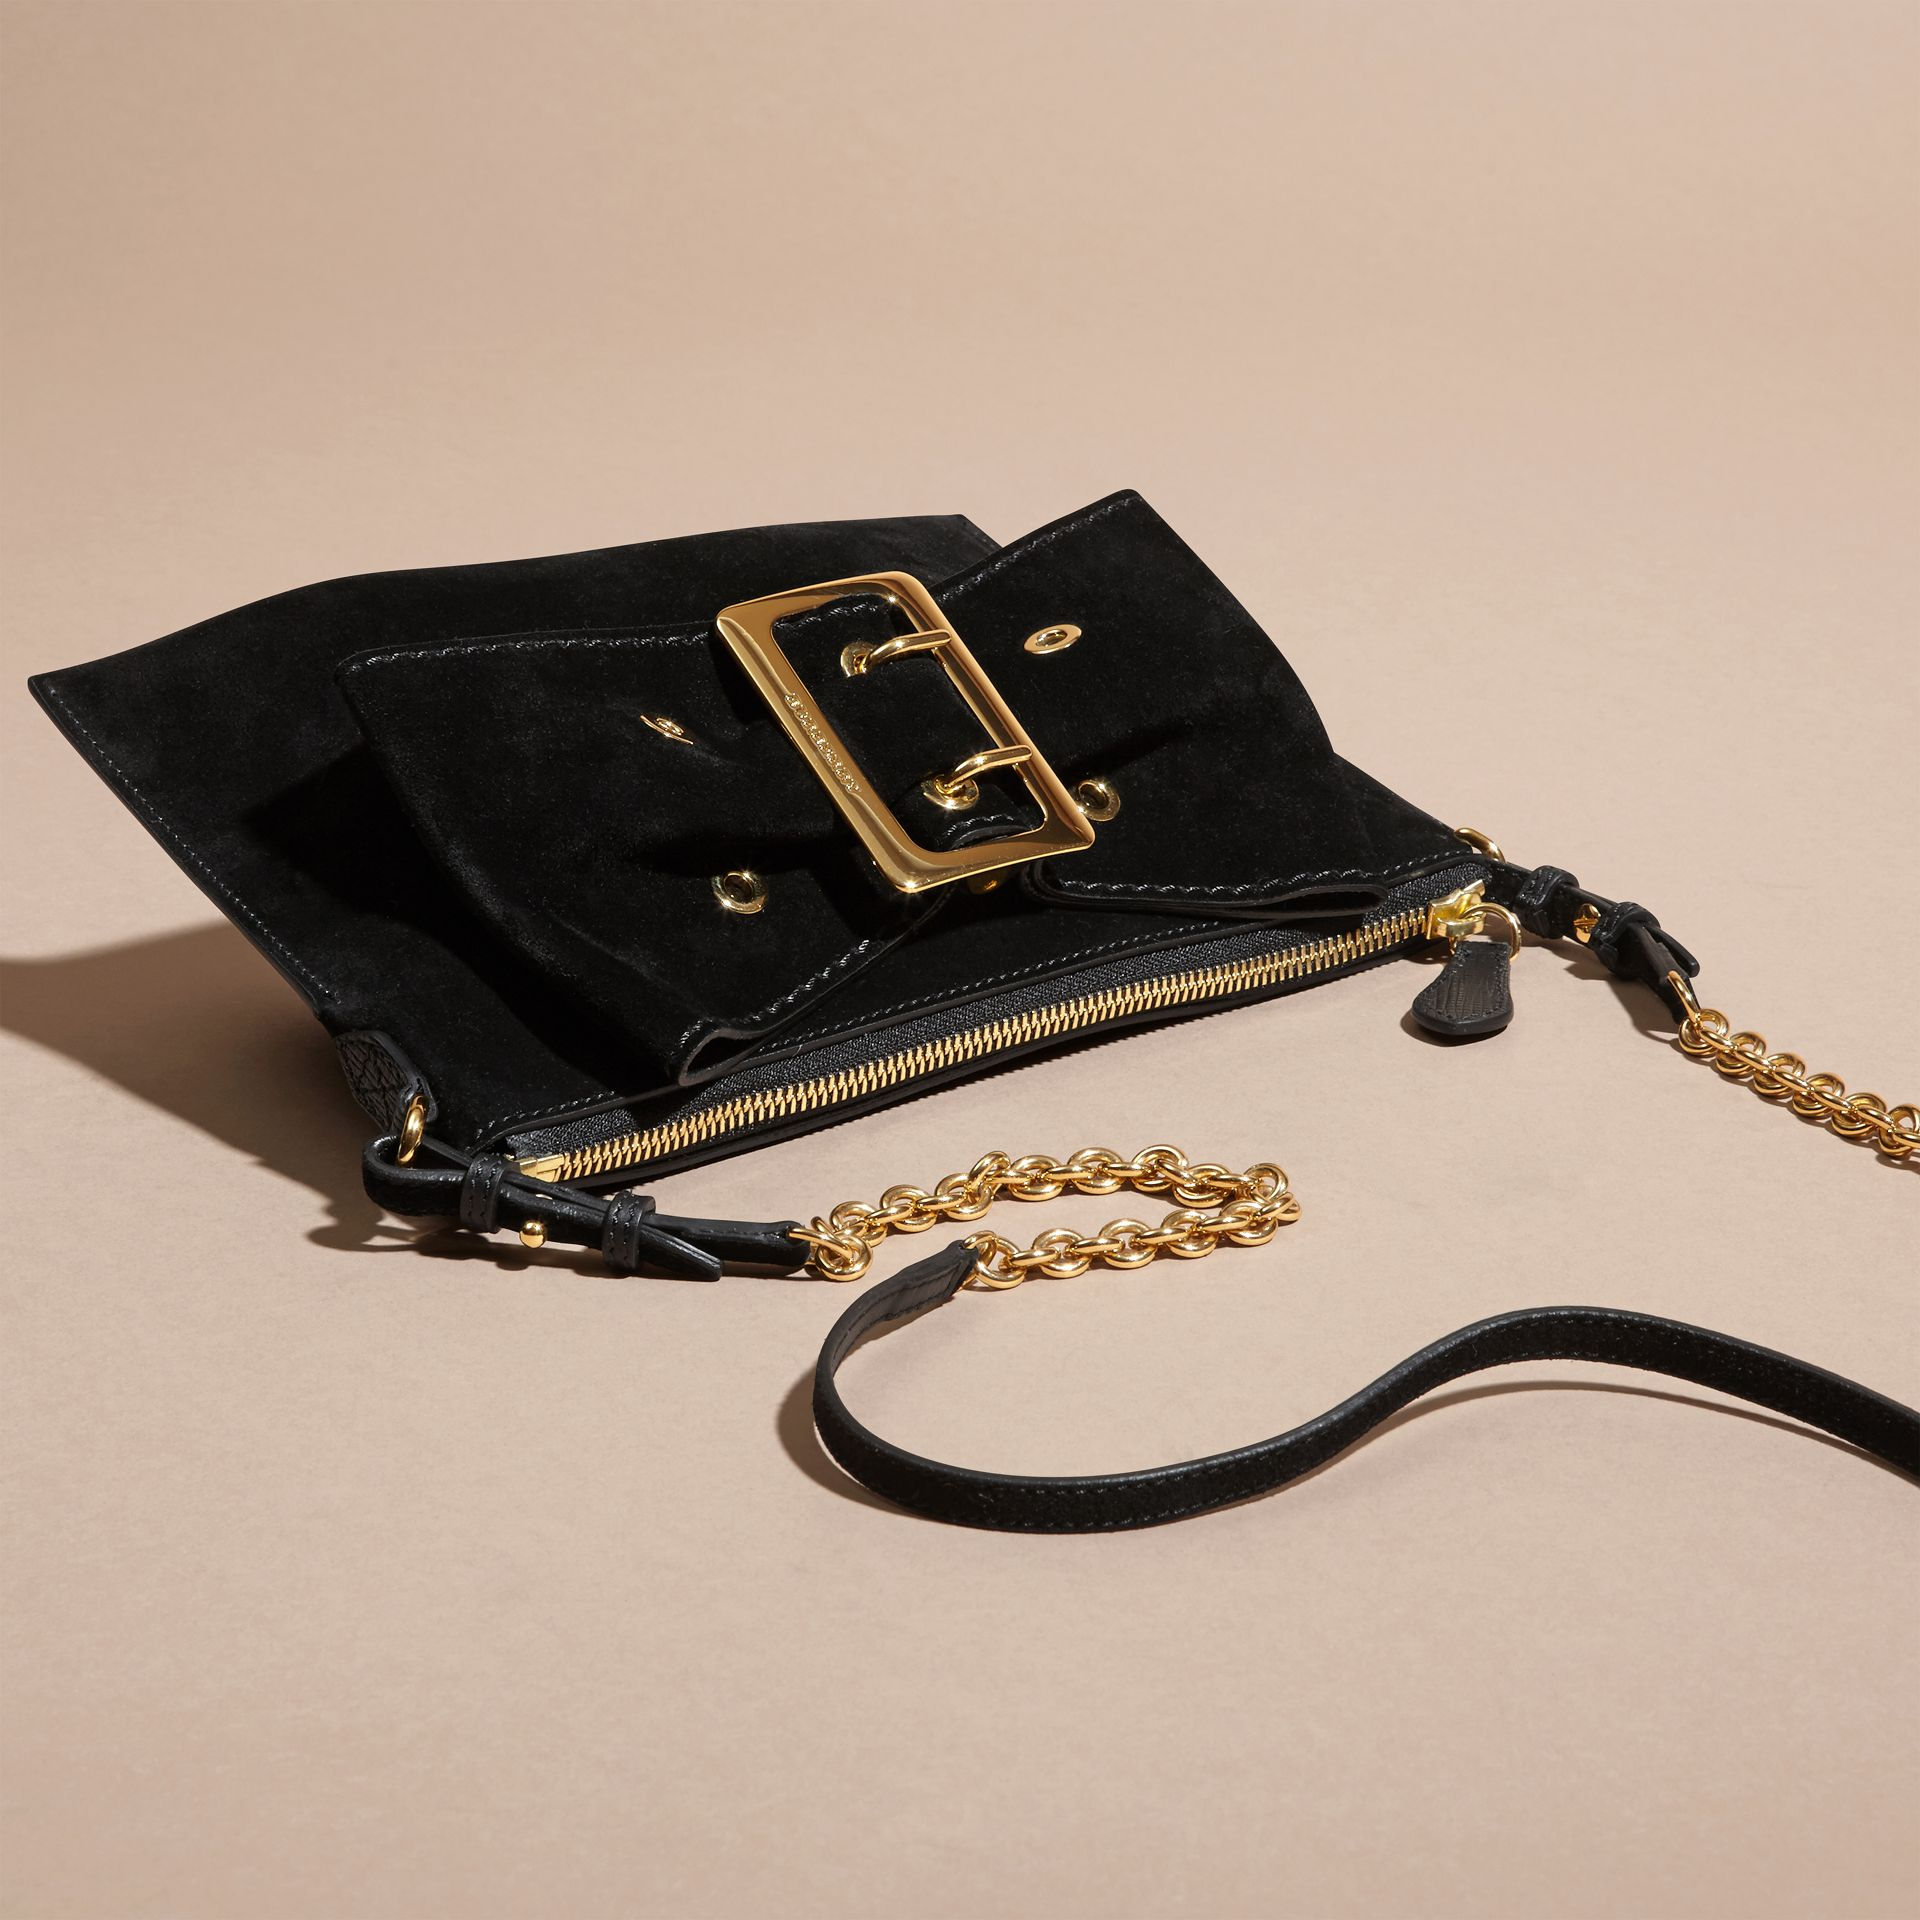 Black Suede Clutch Bag with Buckled Bow Detail Black - gallery image 8